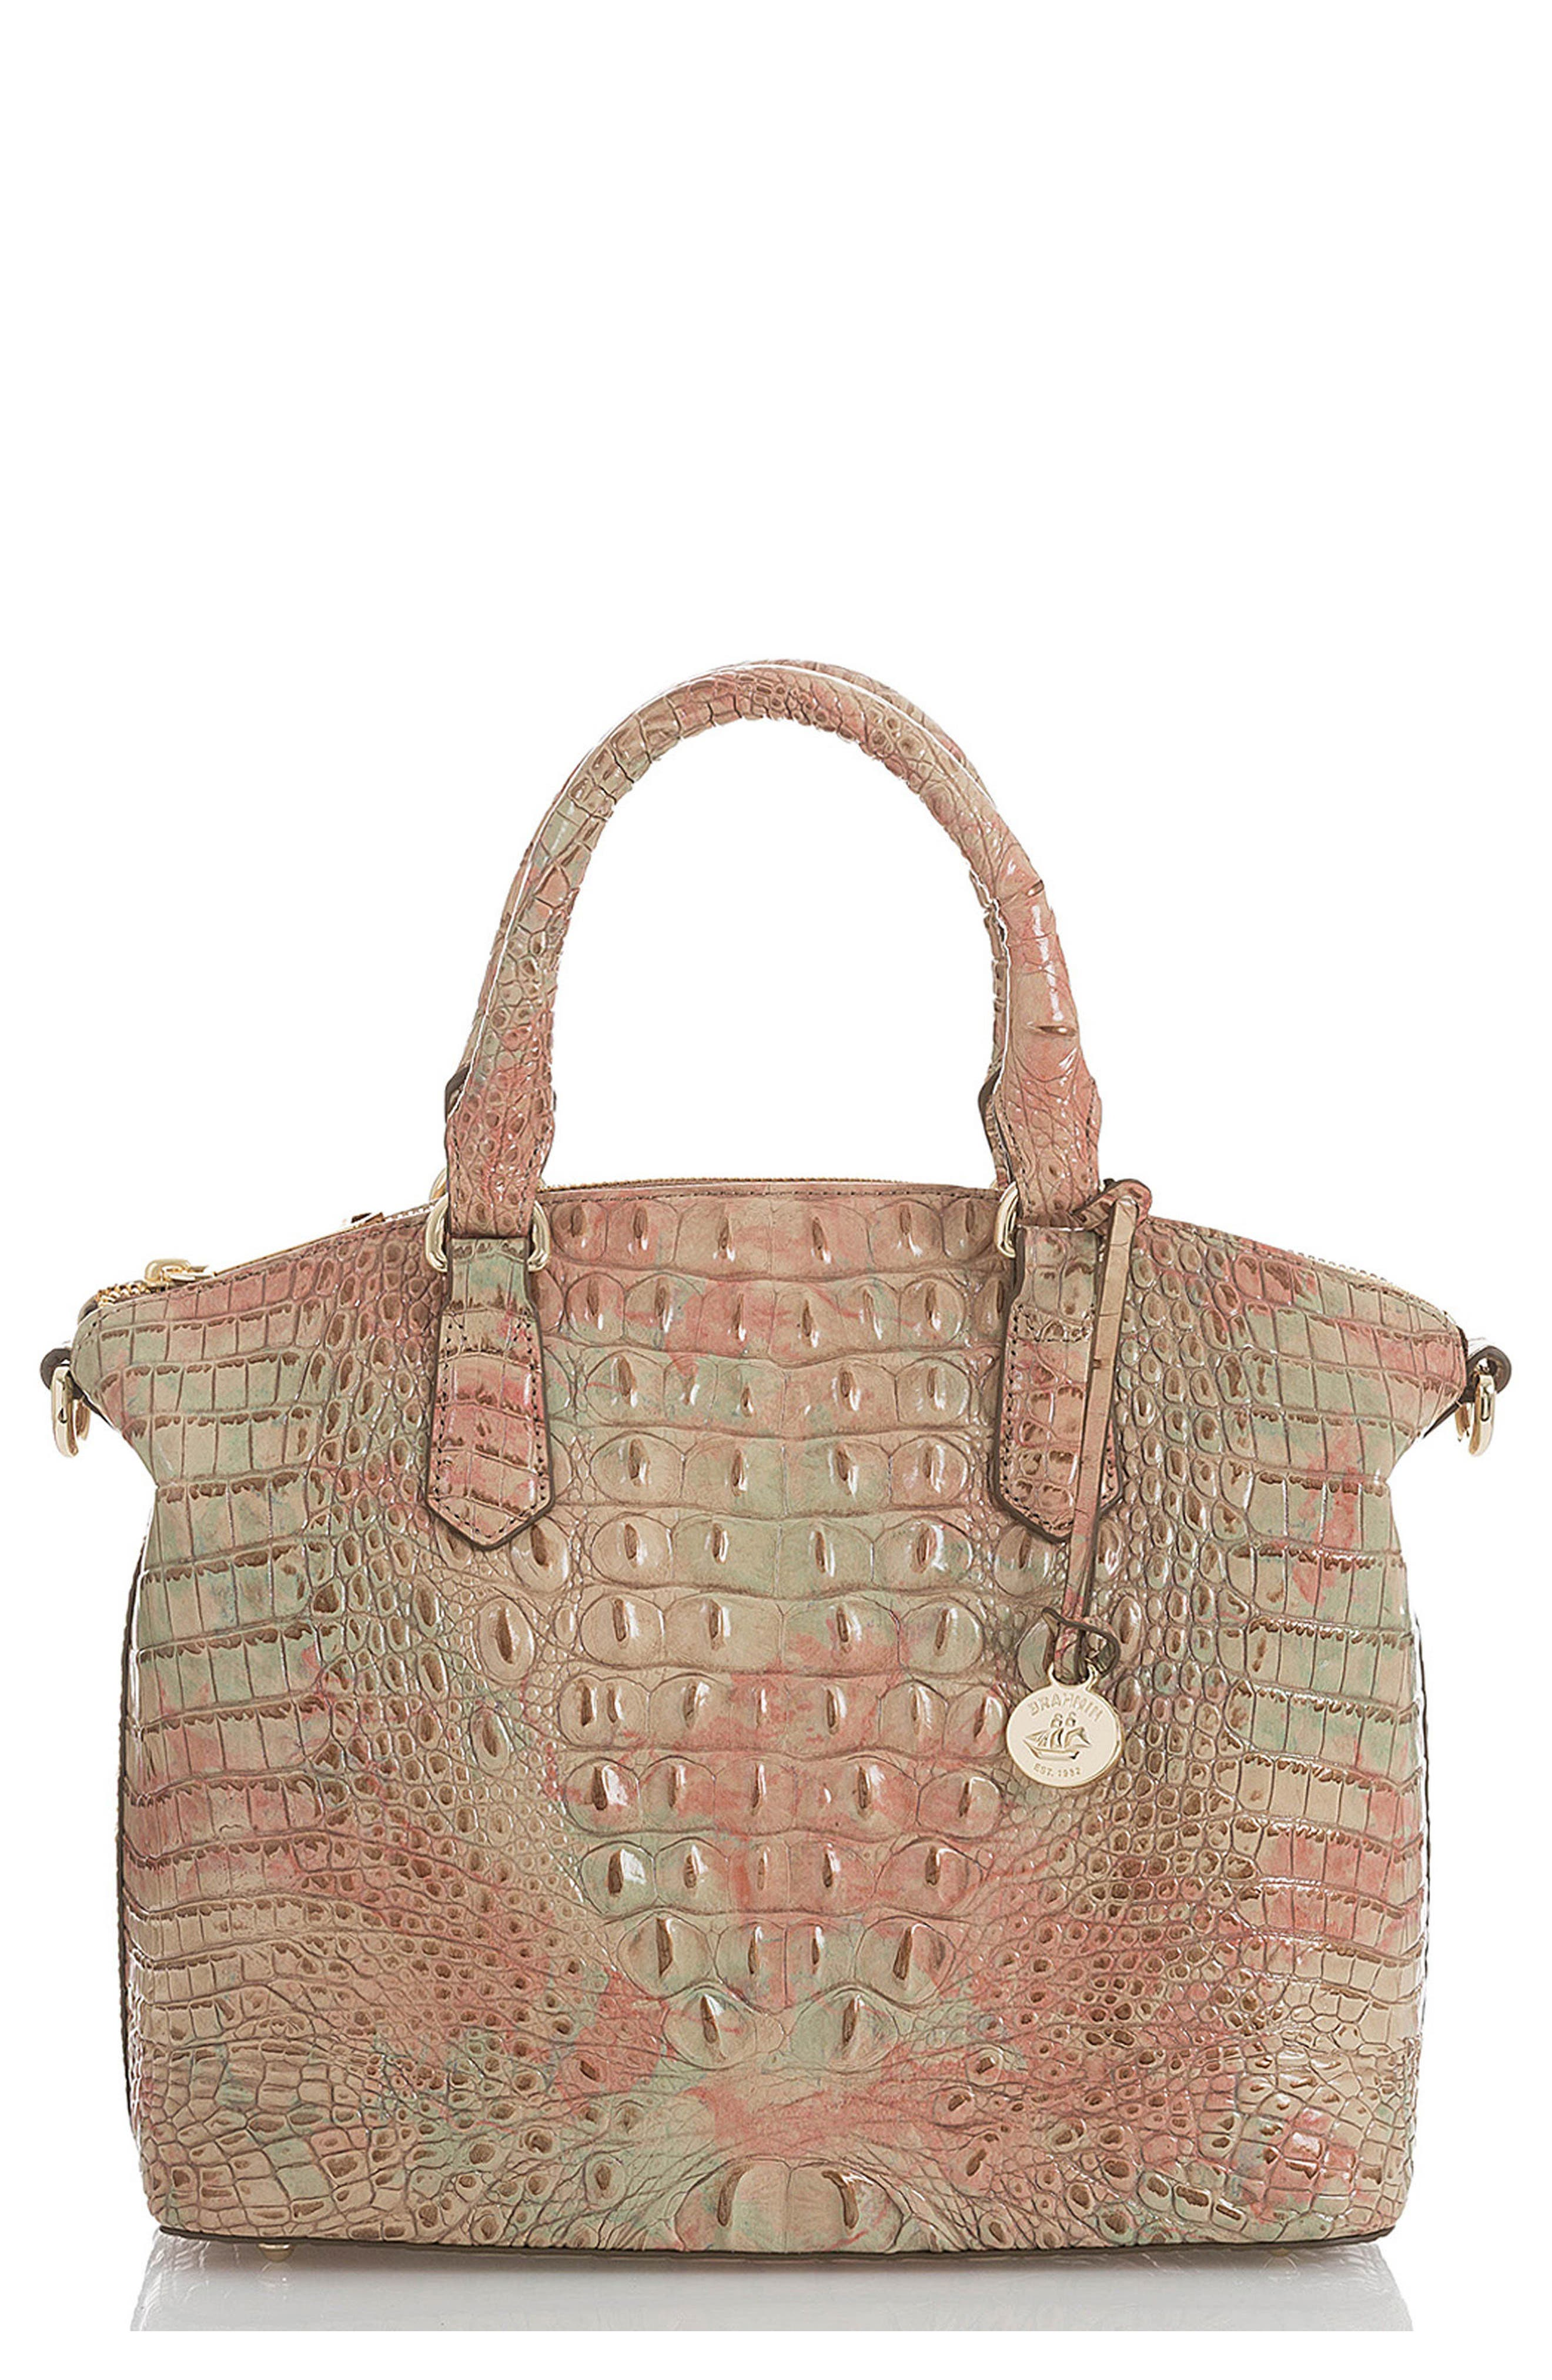 'Medium Duxbury' Croc Embossed Leather Satchel,                         Main,                         color, Sahara